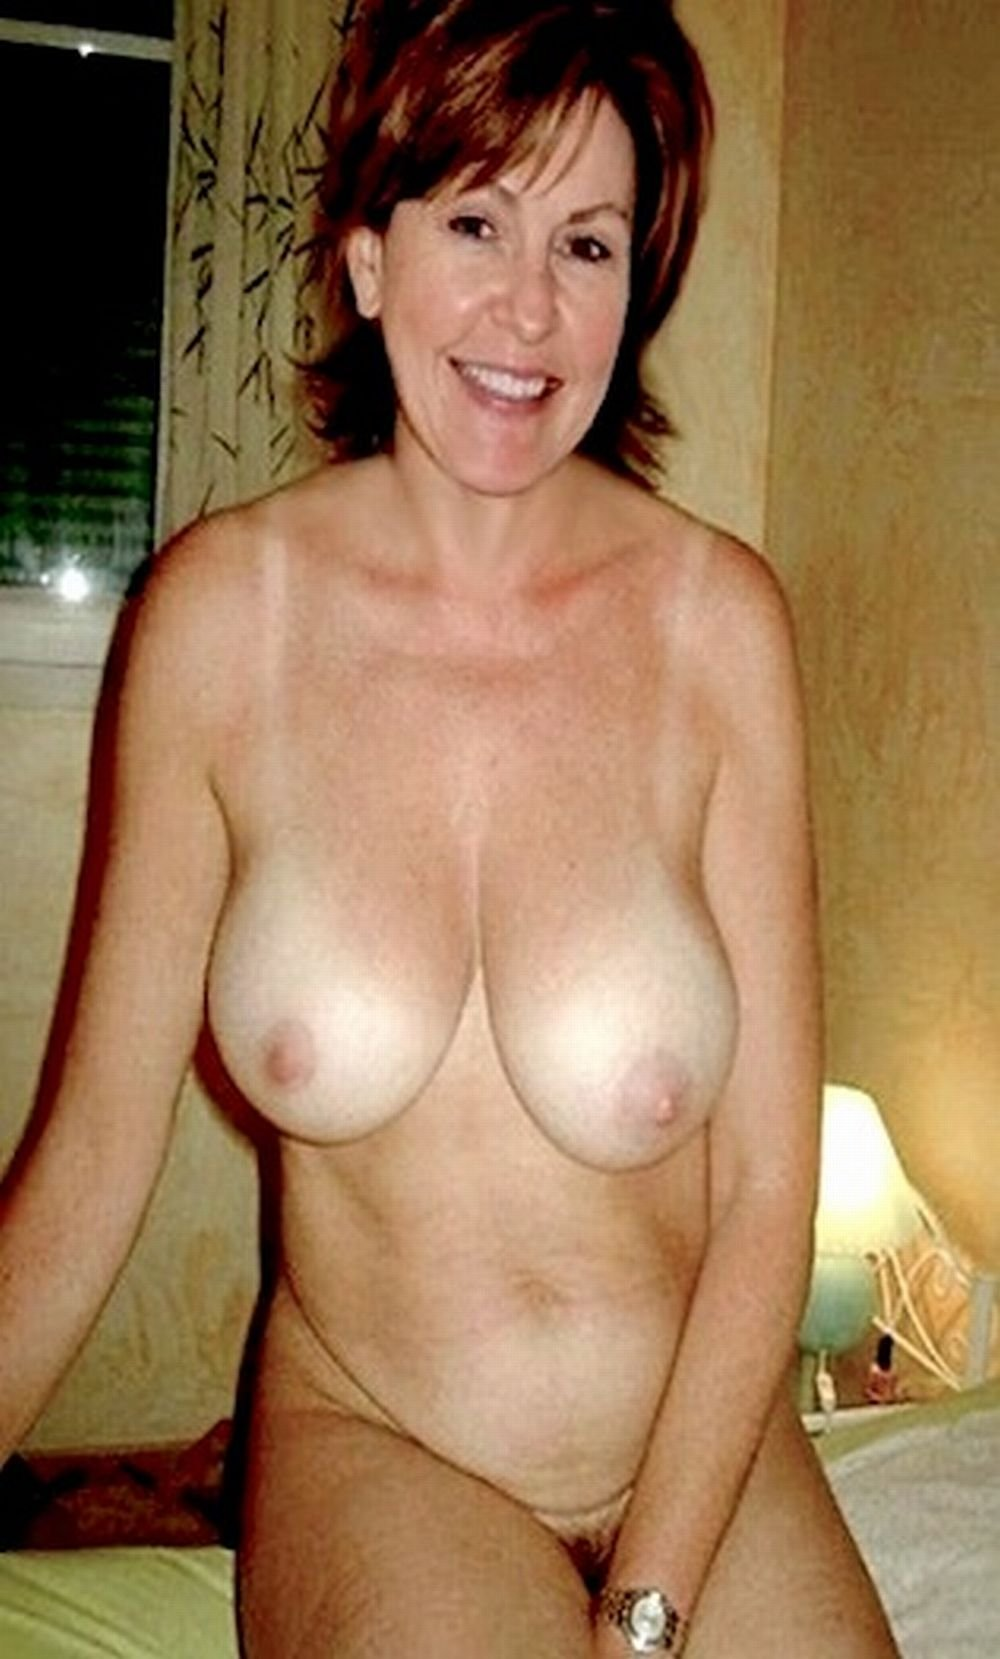 Grorr    reccomended do milfs like anal